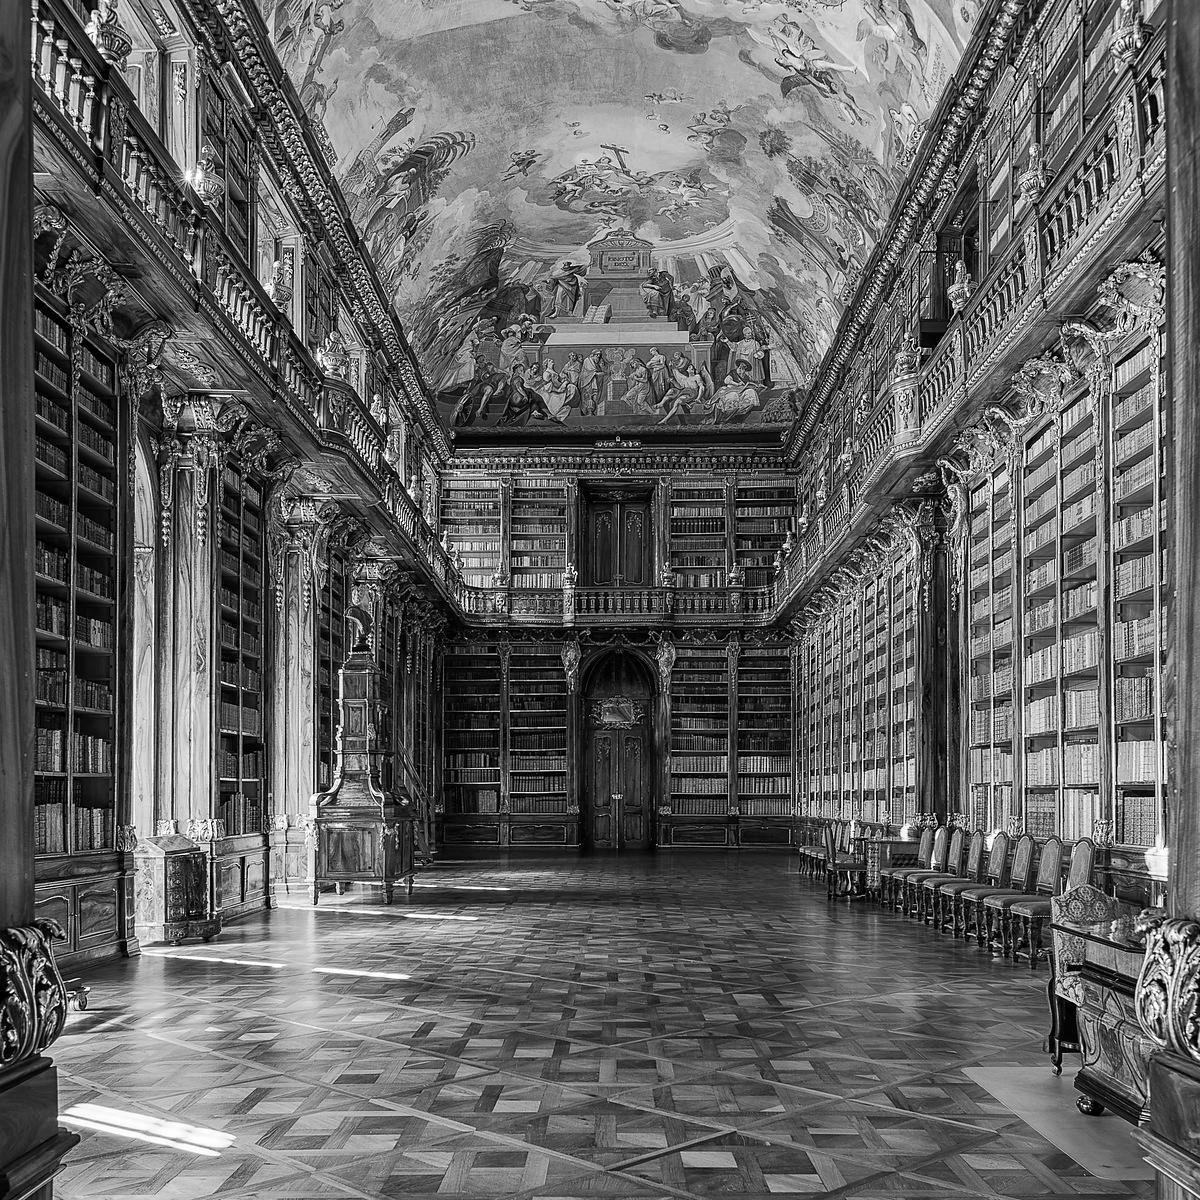 Strahov Library - Philosophical room